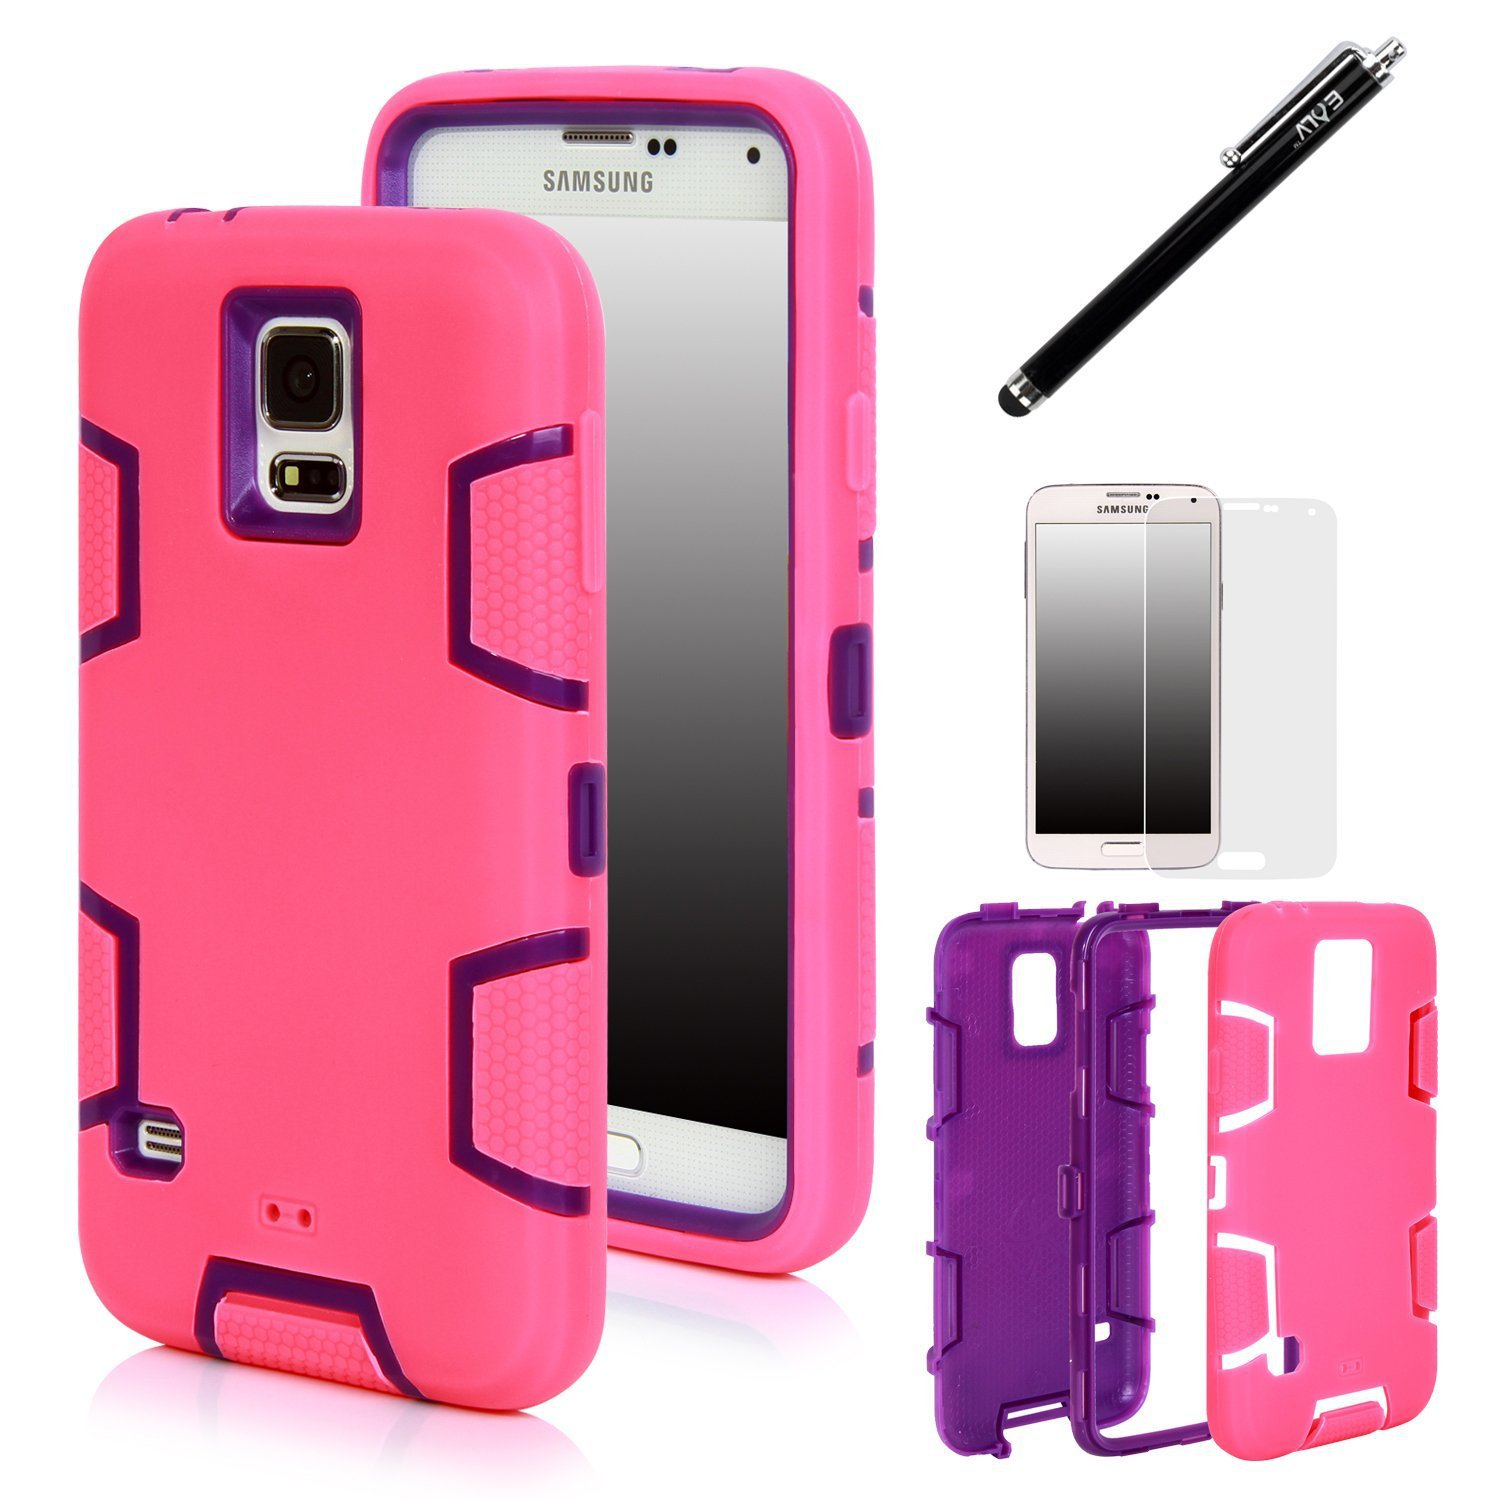 galaxy s5 galaxy s5 case e lv shock absorption high impact resistant hybrid hot pink purple. Black Bedroom Furniture Sets. Home Design Ideas